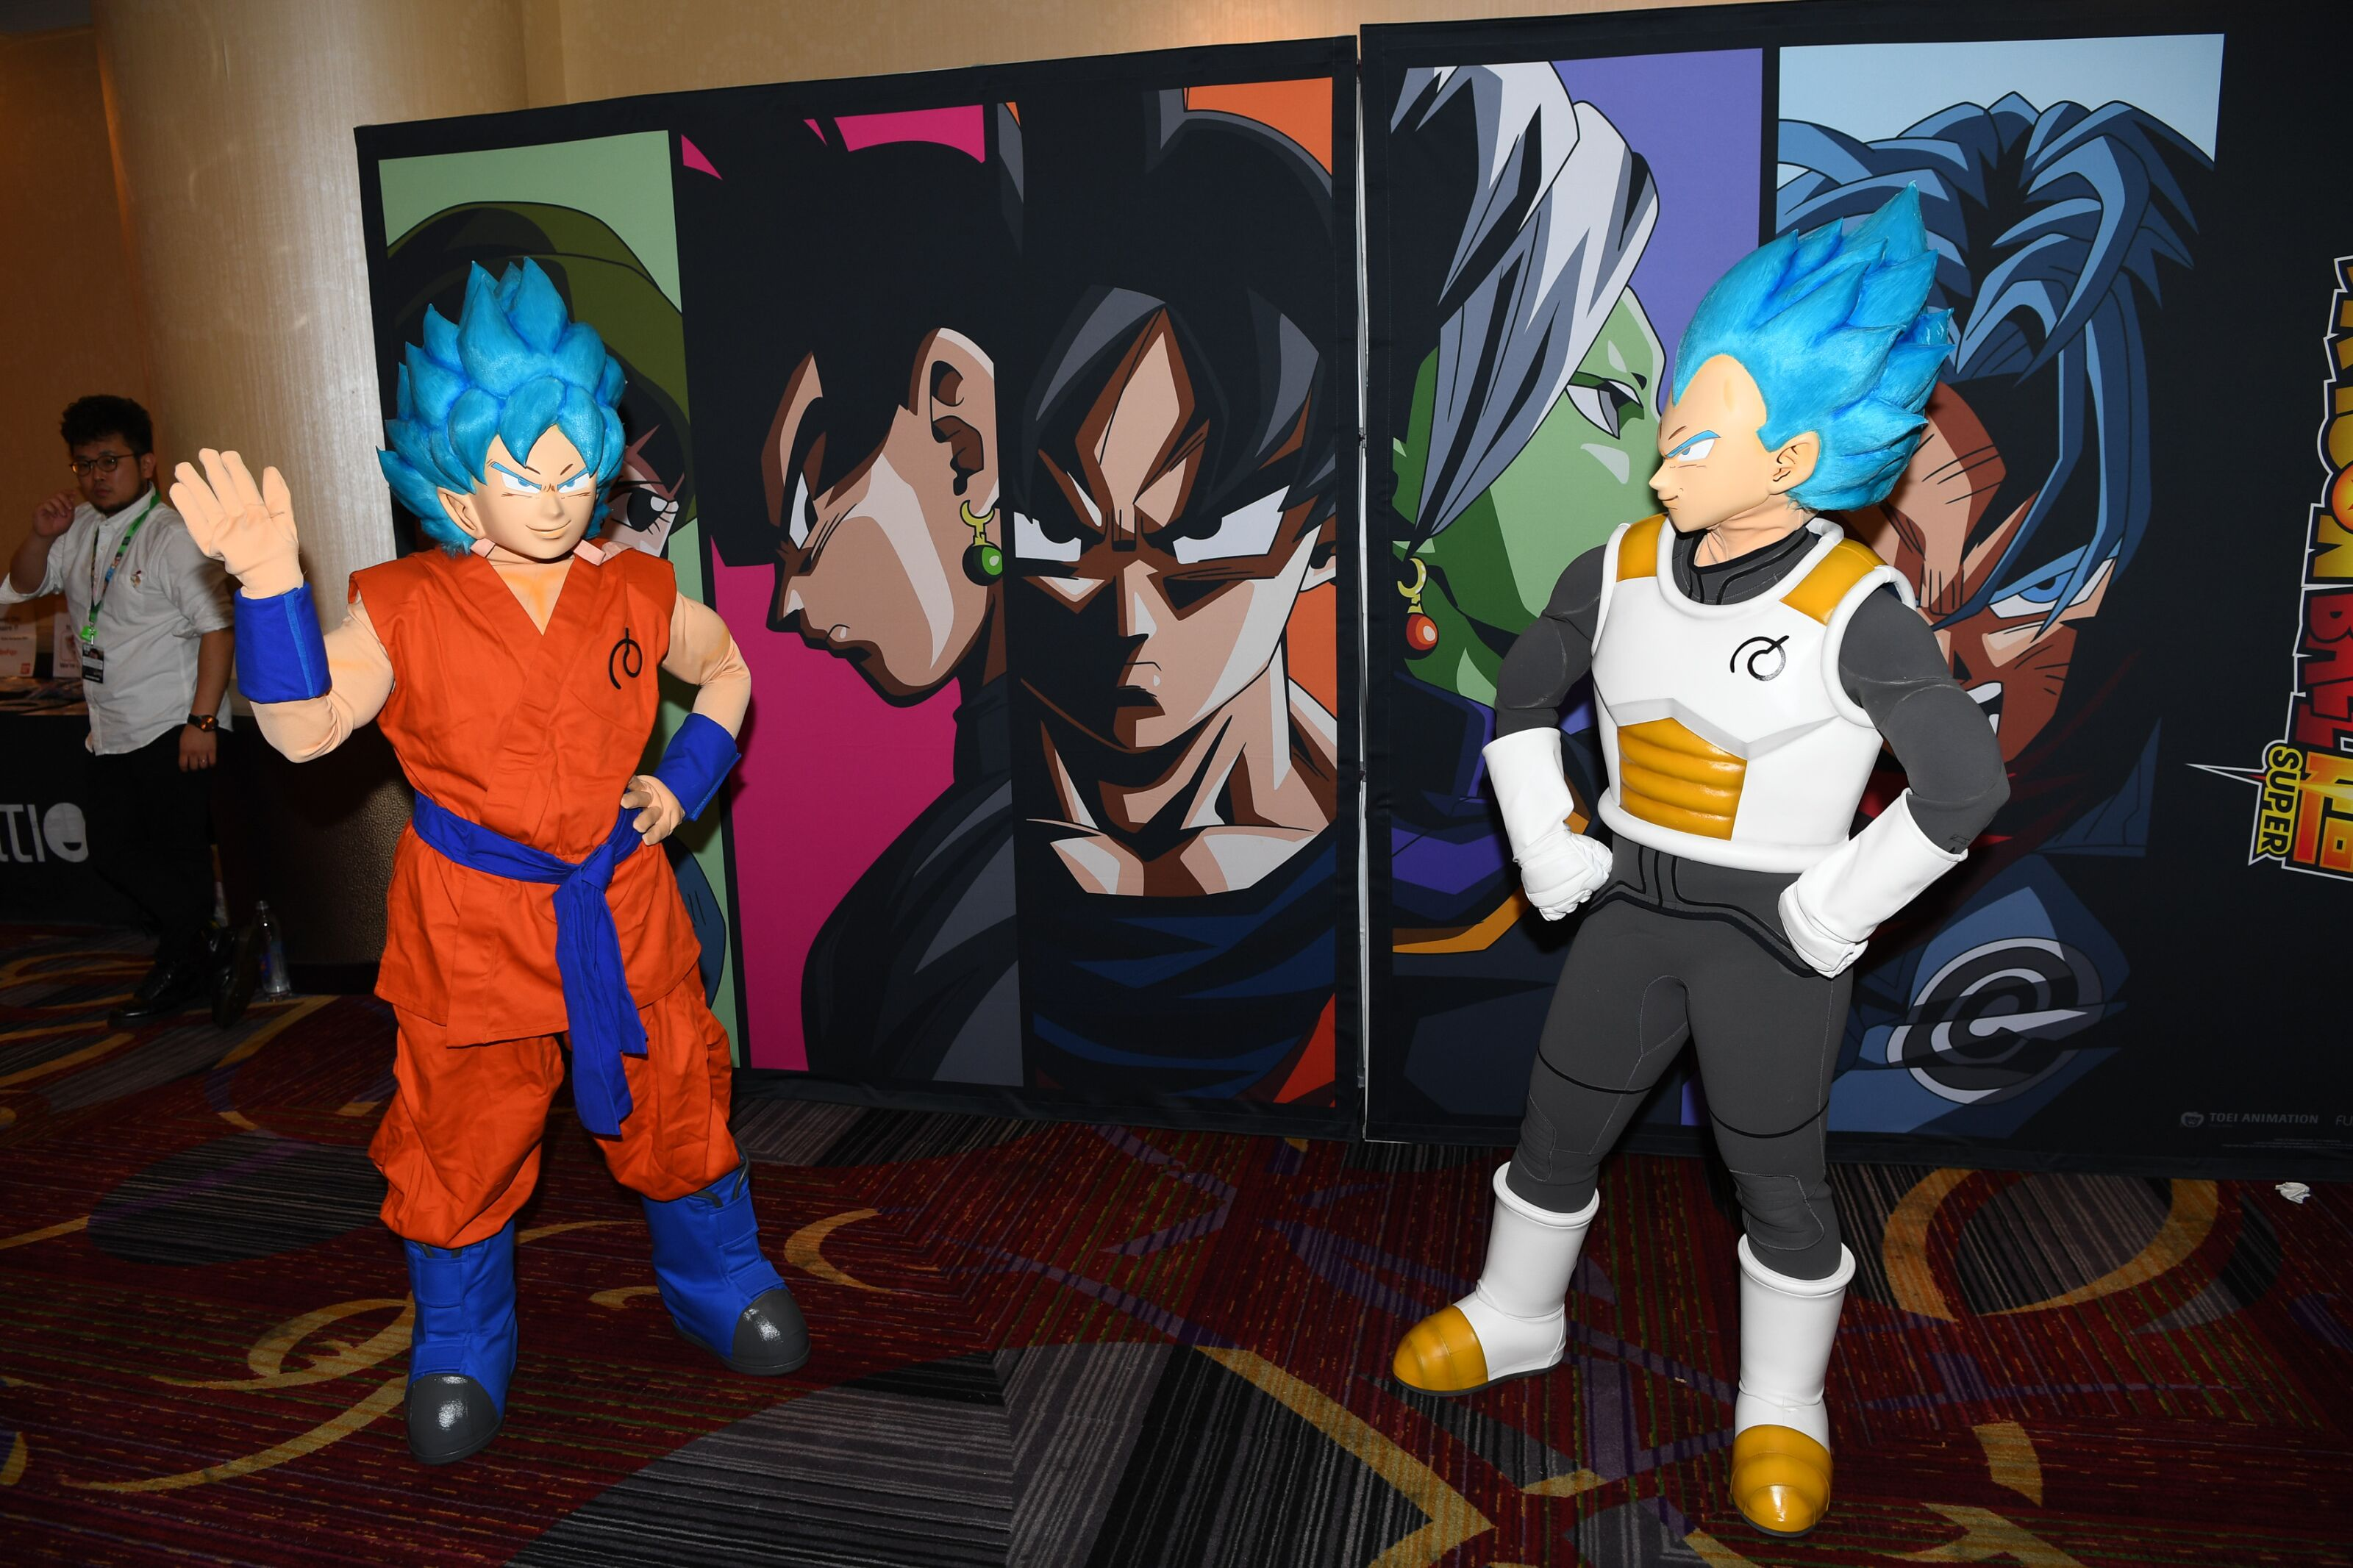 Will Funimation's split from Crunchyroll affect anime on Hulu?